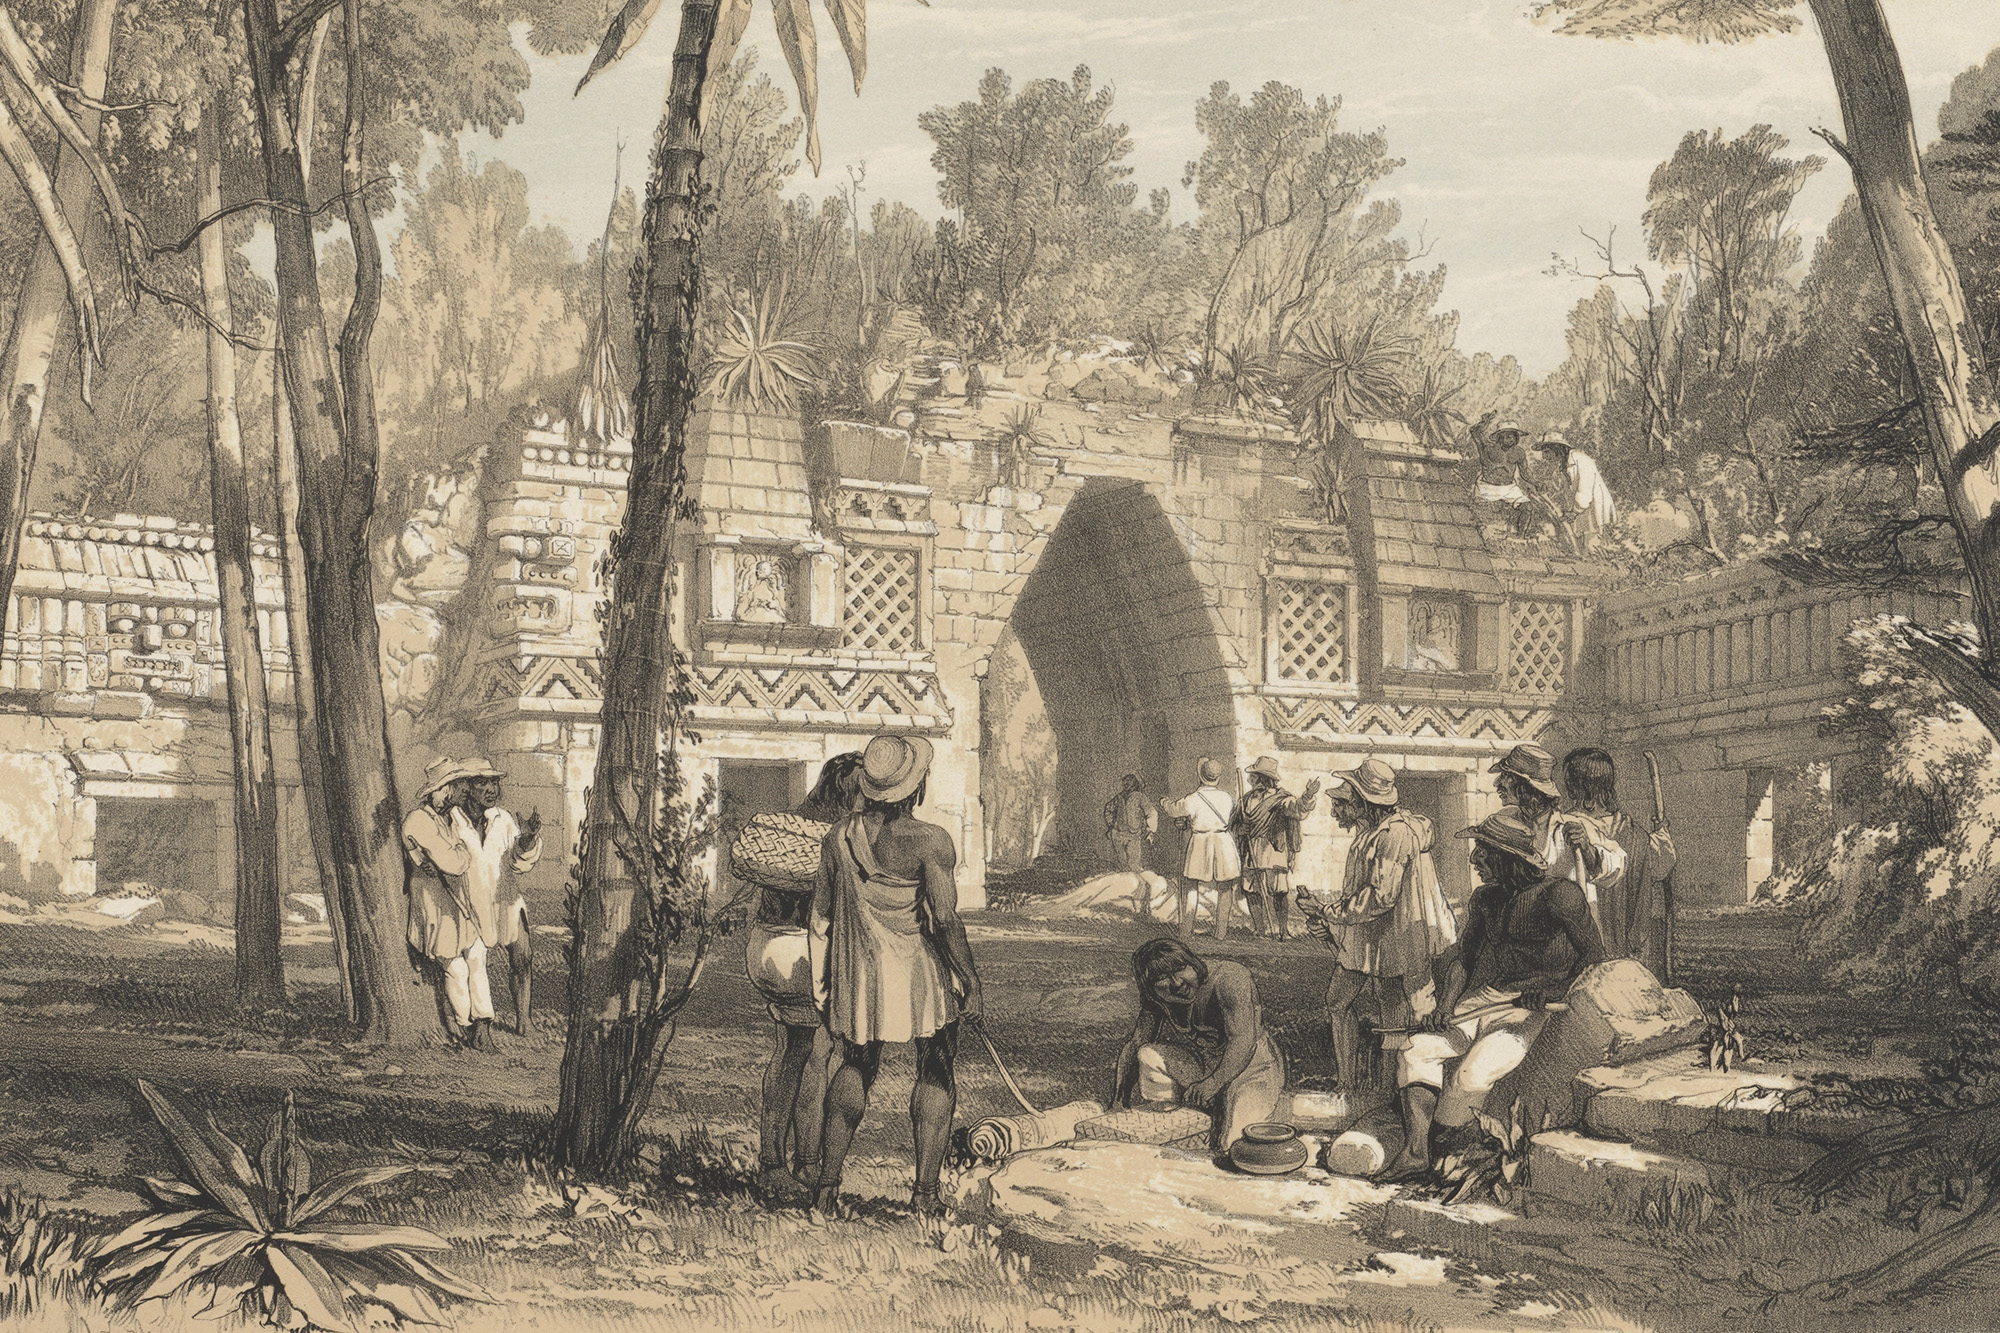 Detail of Gateway at Labnah, lithograph on stone by J. C. Bourne, based on artwork by Frederick Catherwood, from Catherwood 1844, pl. XIX.